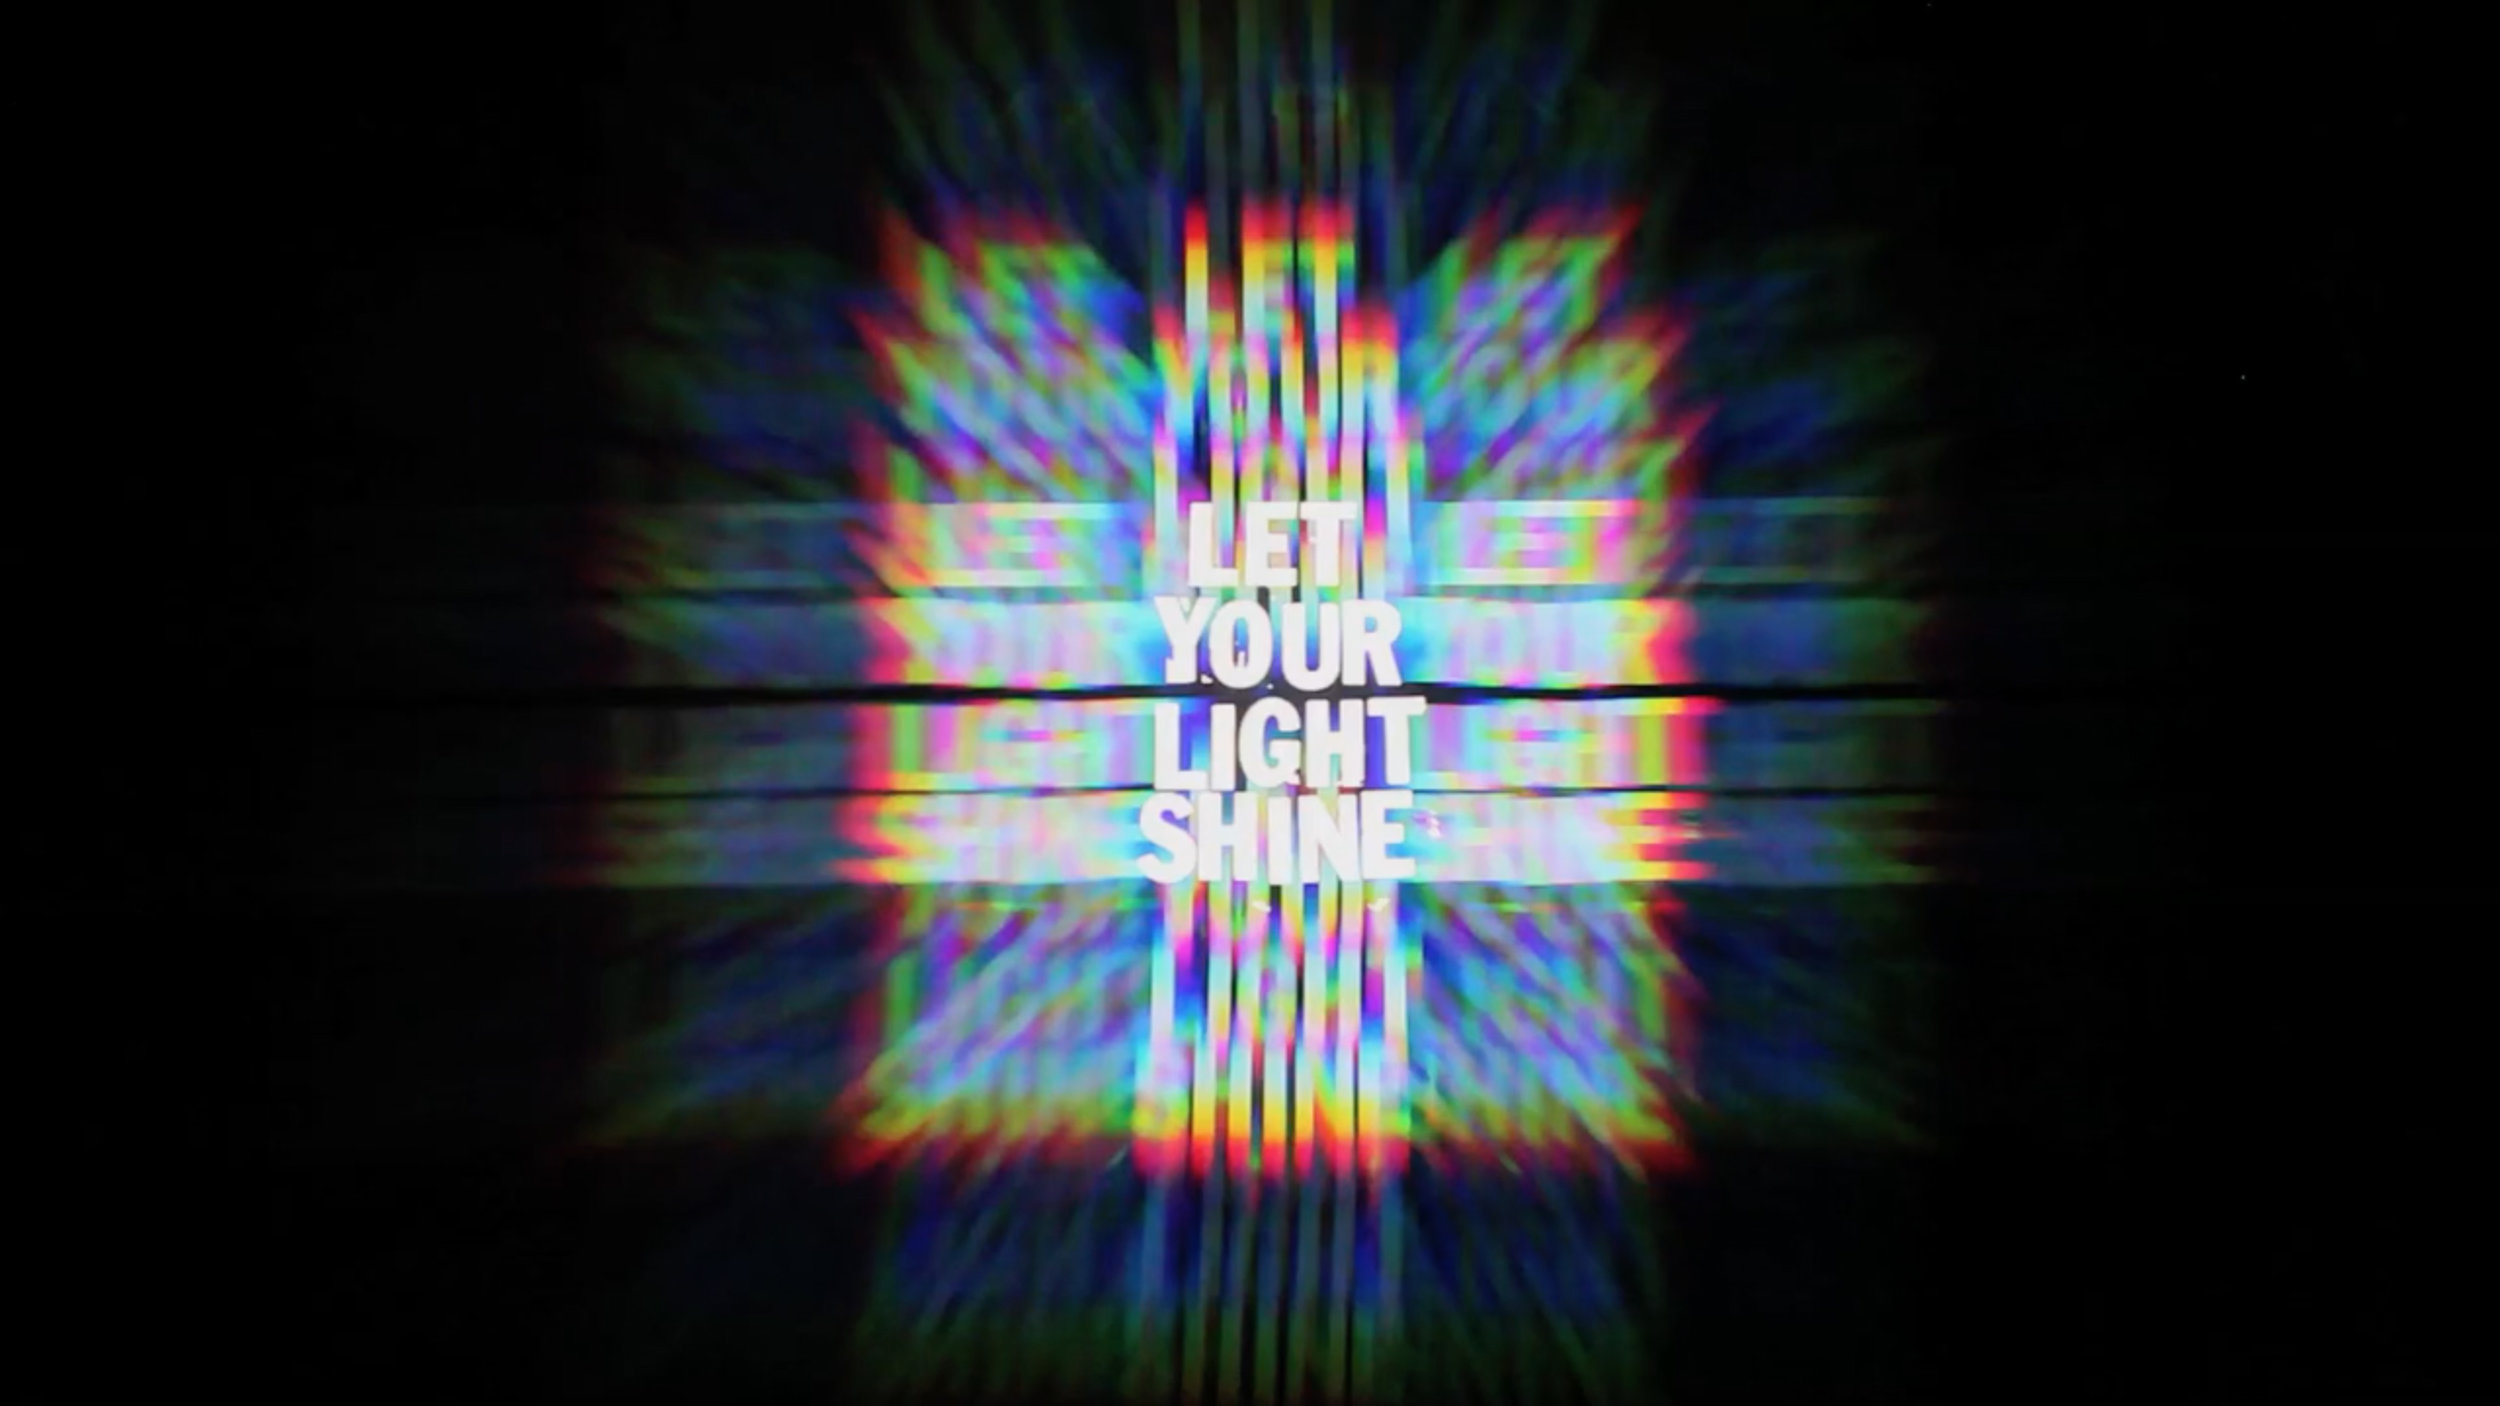 """""""LetYourLightShine"""", Image courtesy of FAR OUT FILM FEST"""